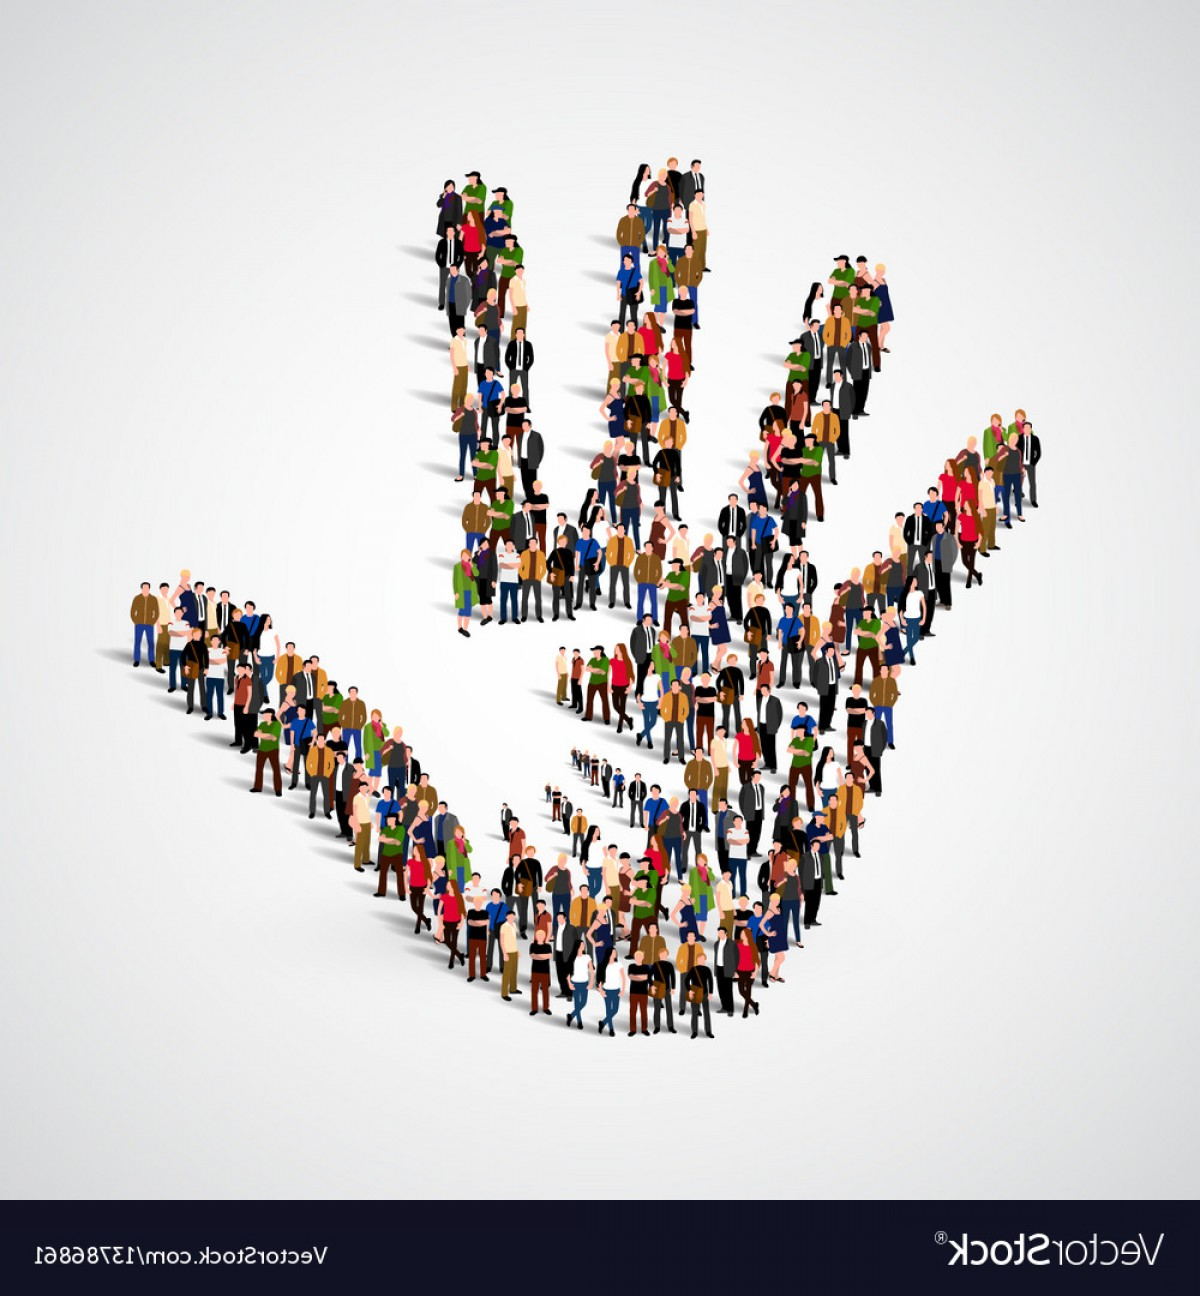 Expanding Population Icon Vector: Large Group Of People In Form Of Helping Hand Icon Vector